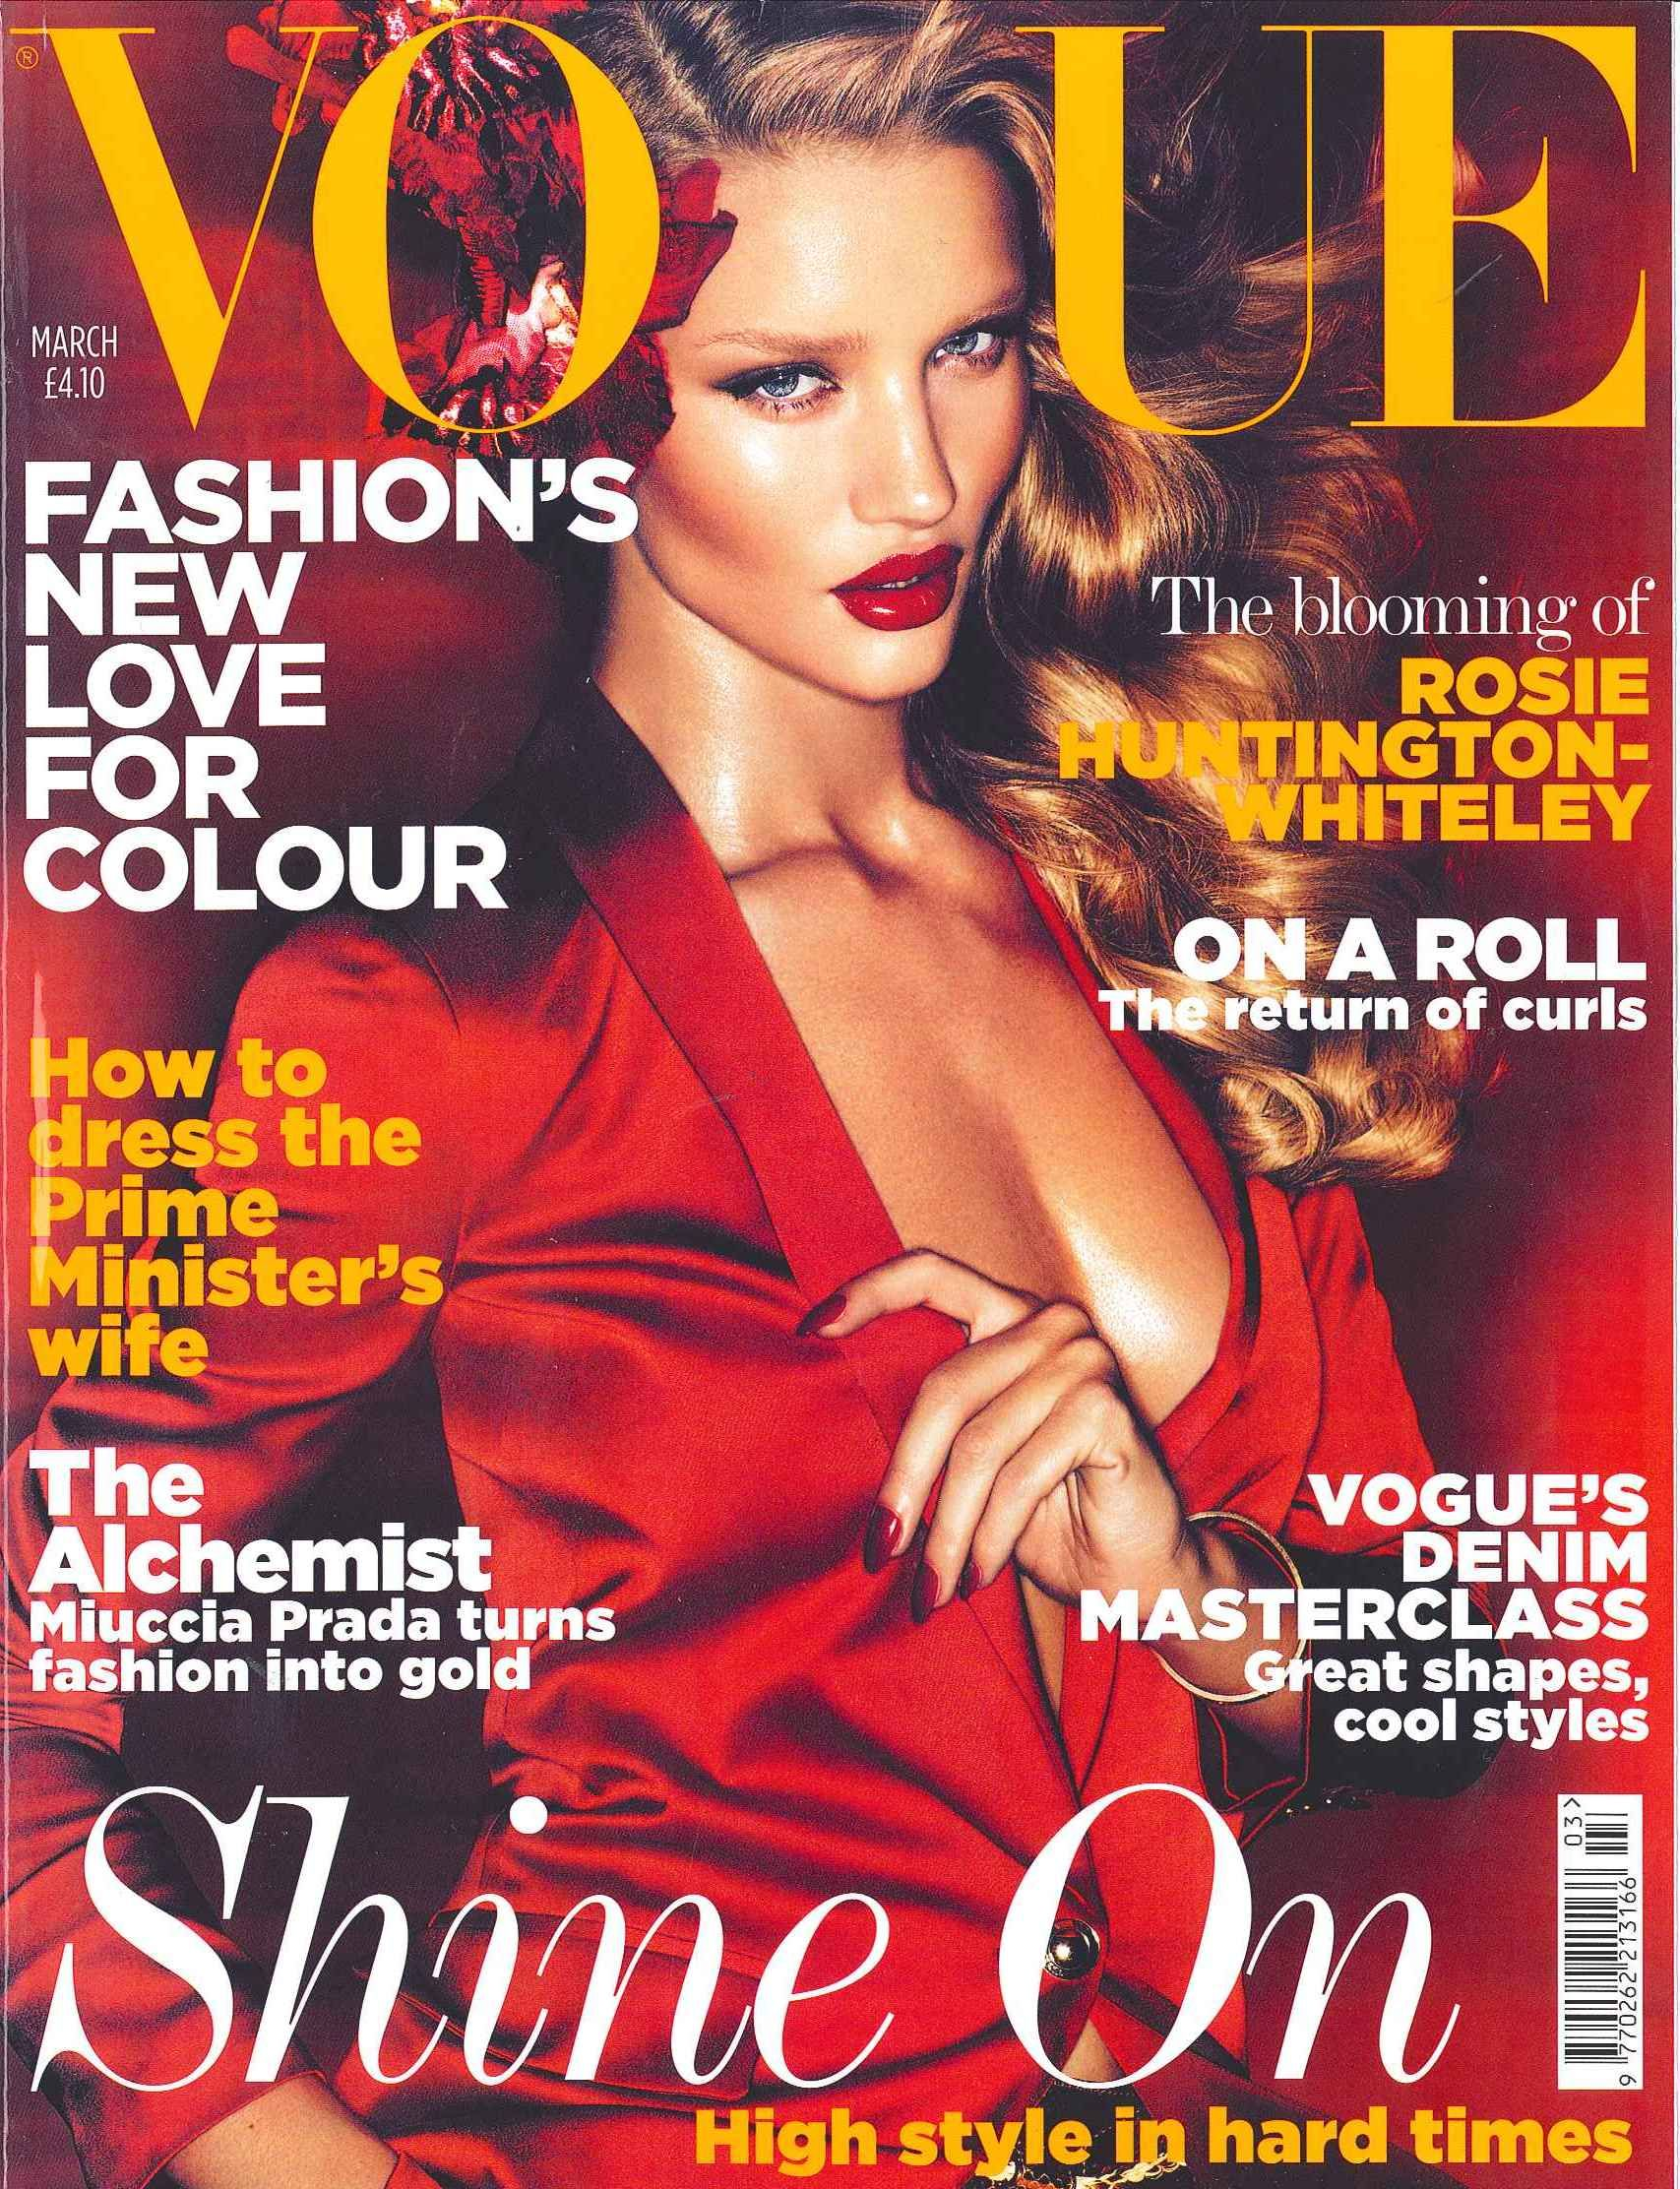 968502637d067 Better Pic of Rosie Huntington-Whiteley for Vogue UK March 2011 ...